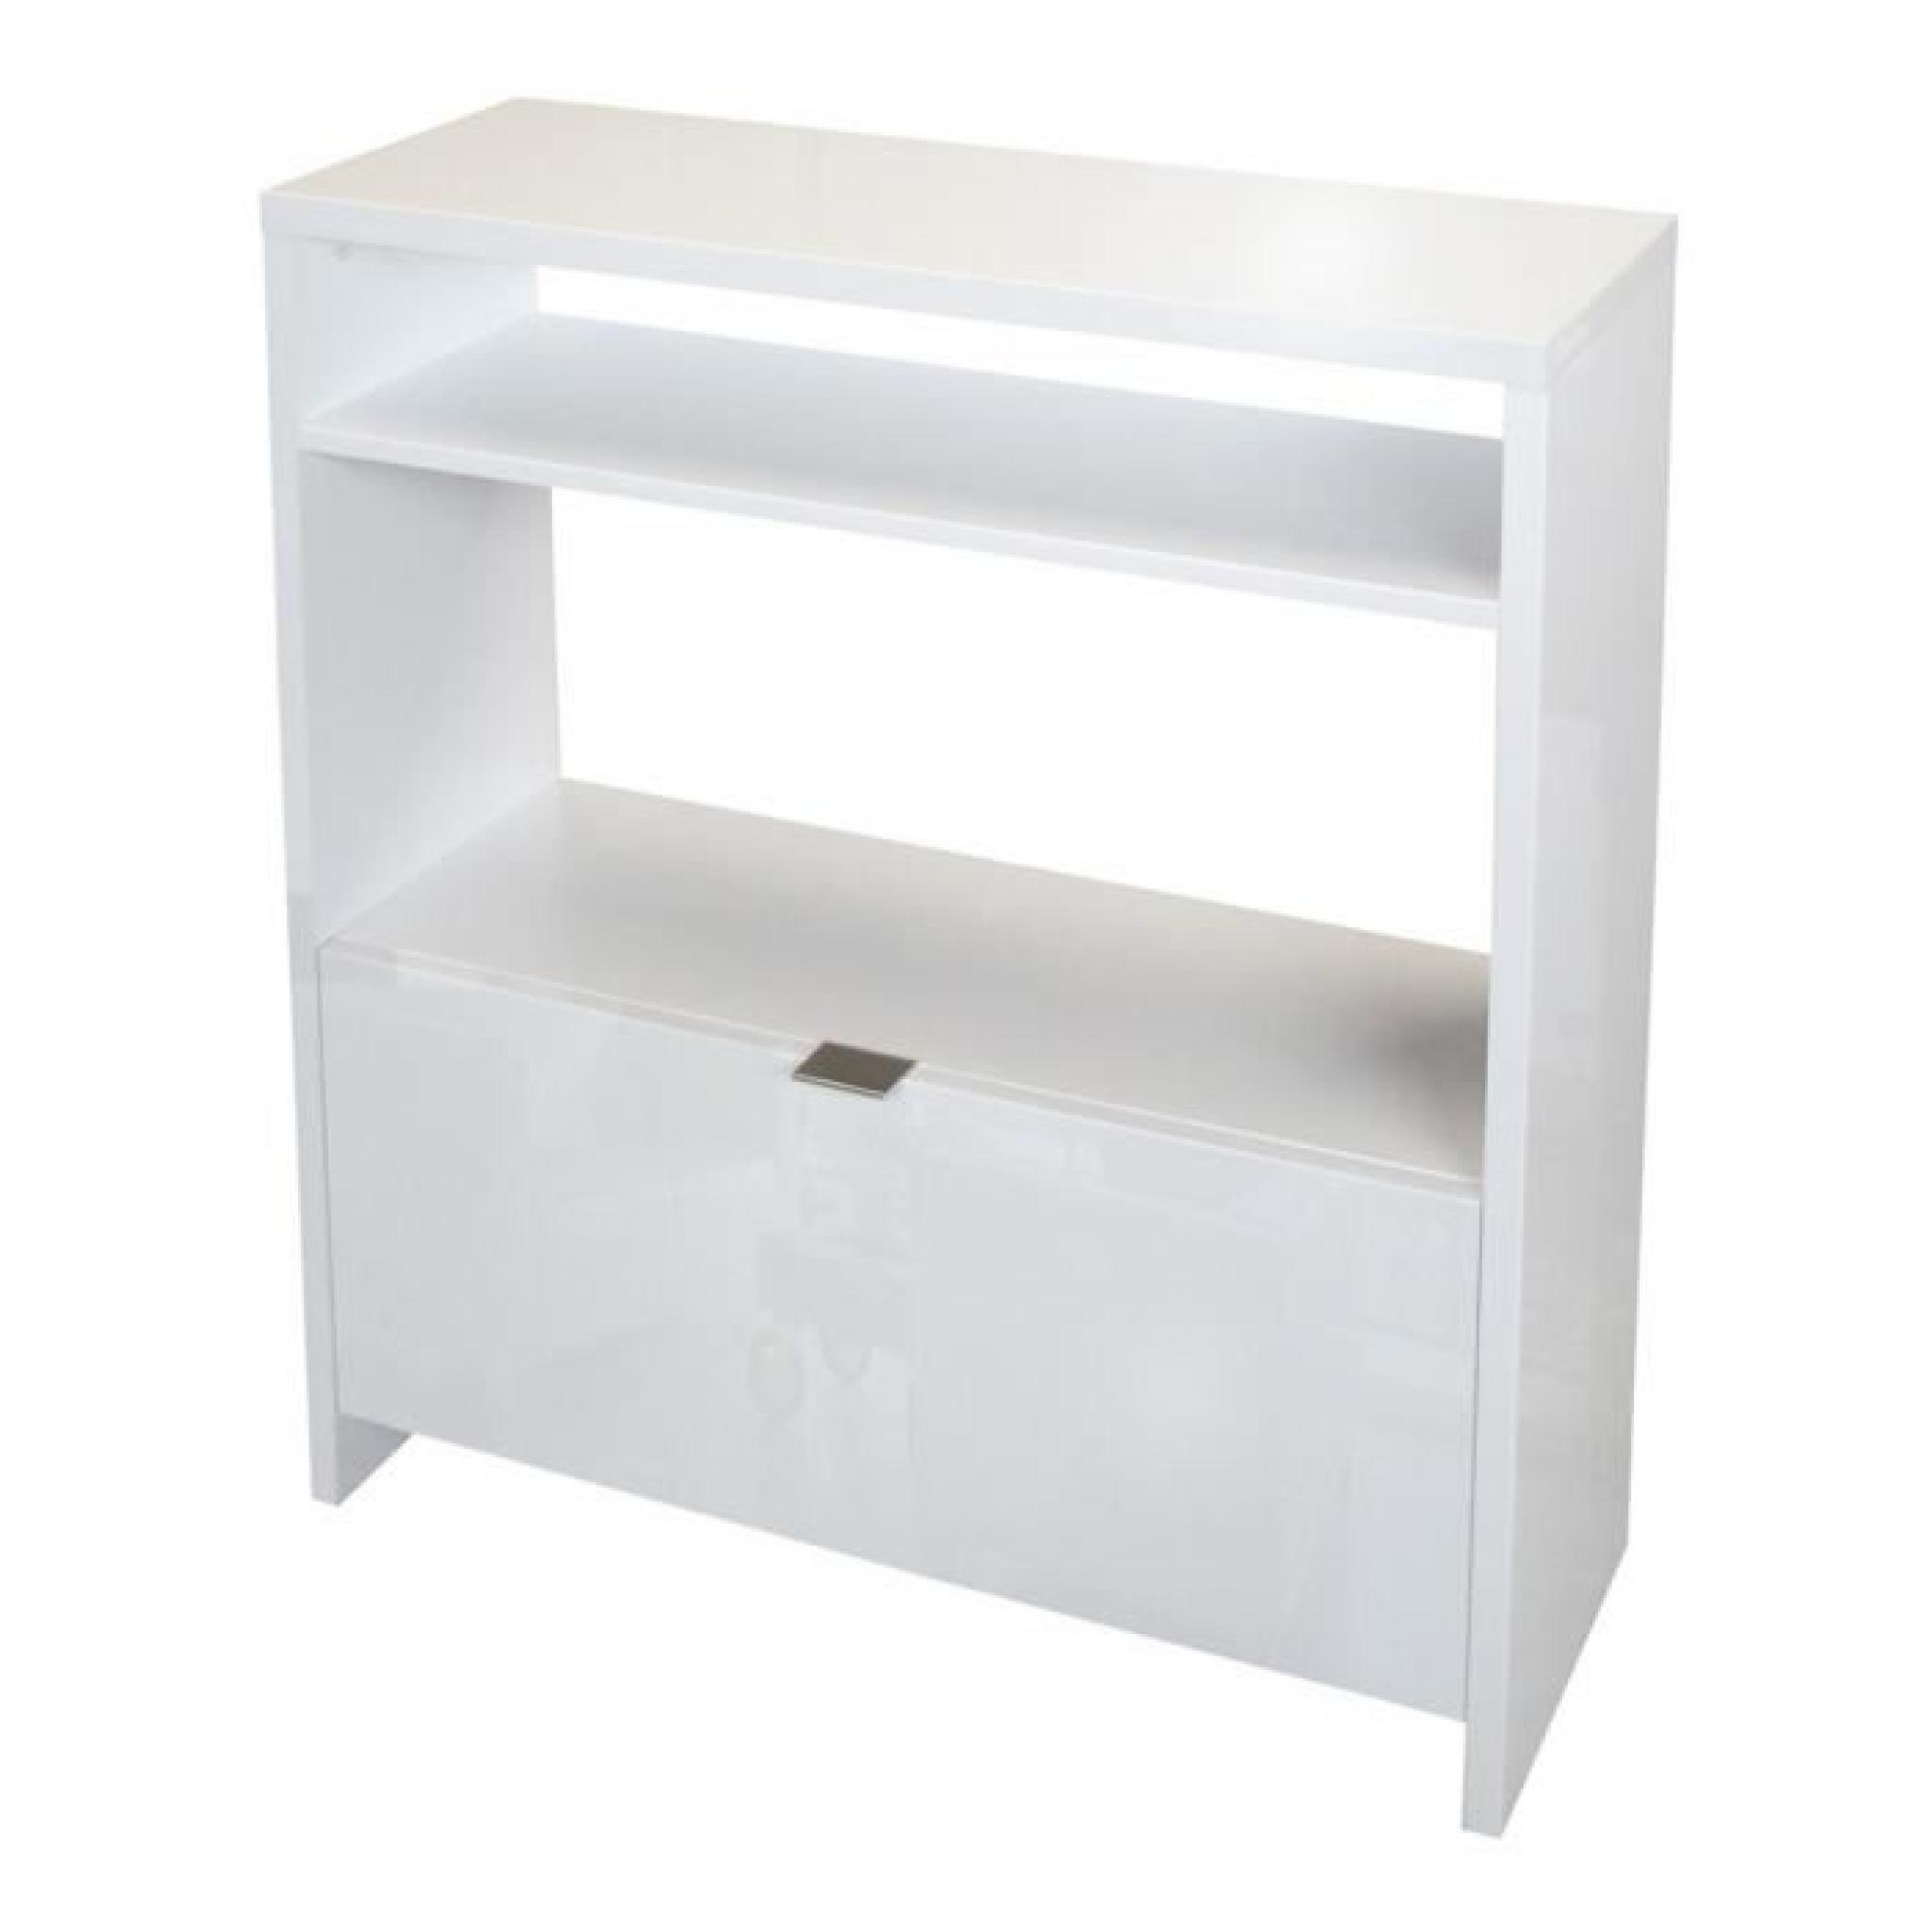 shoes console meuble chaussures 93 cm blanc haute brillance achat vente console meuble pas. Black Bedroom Furniture Sets. Home Design Ideas